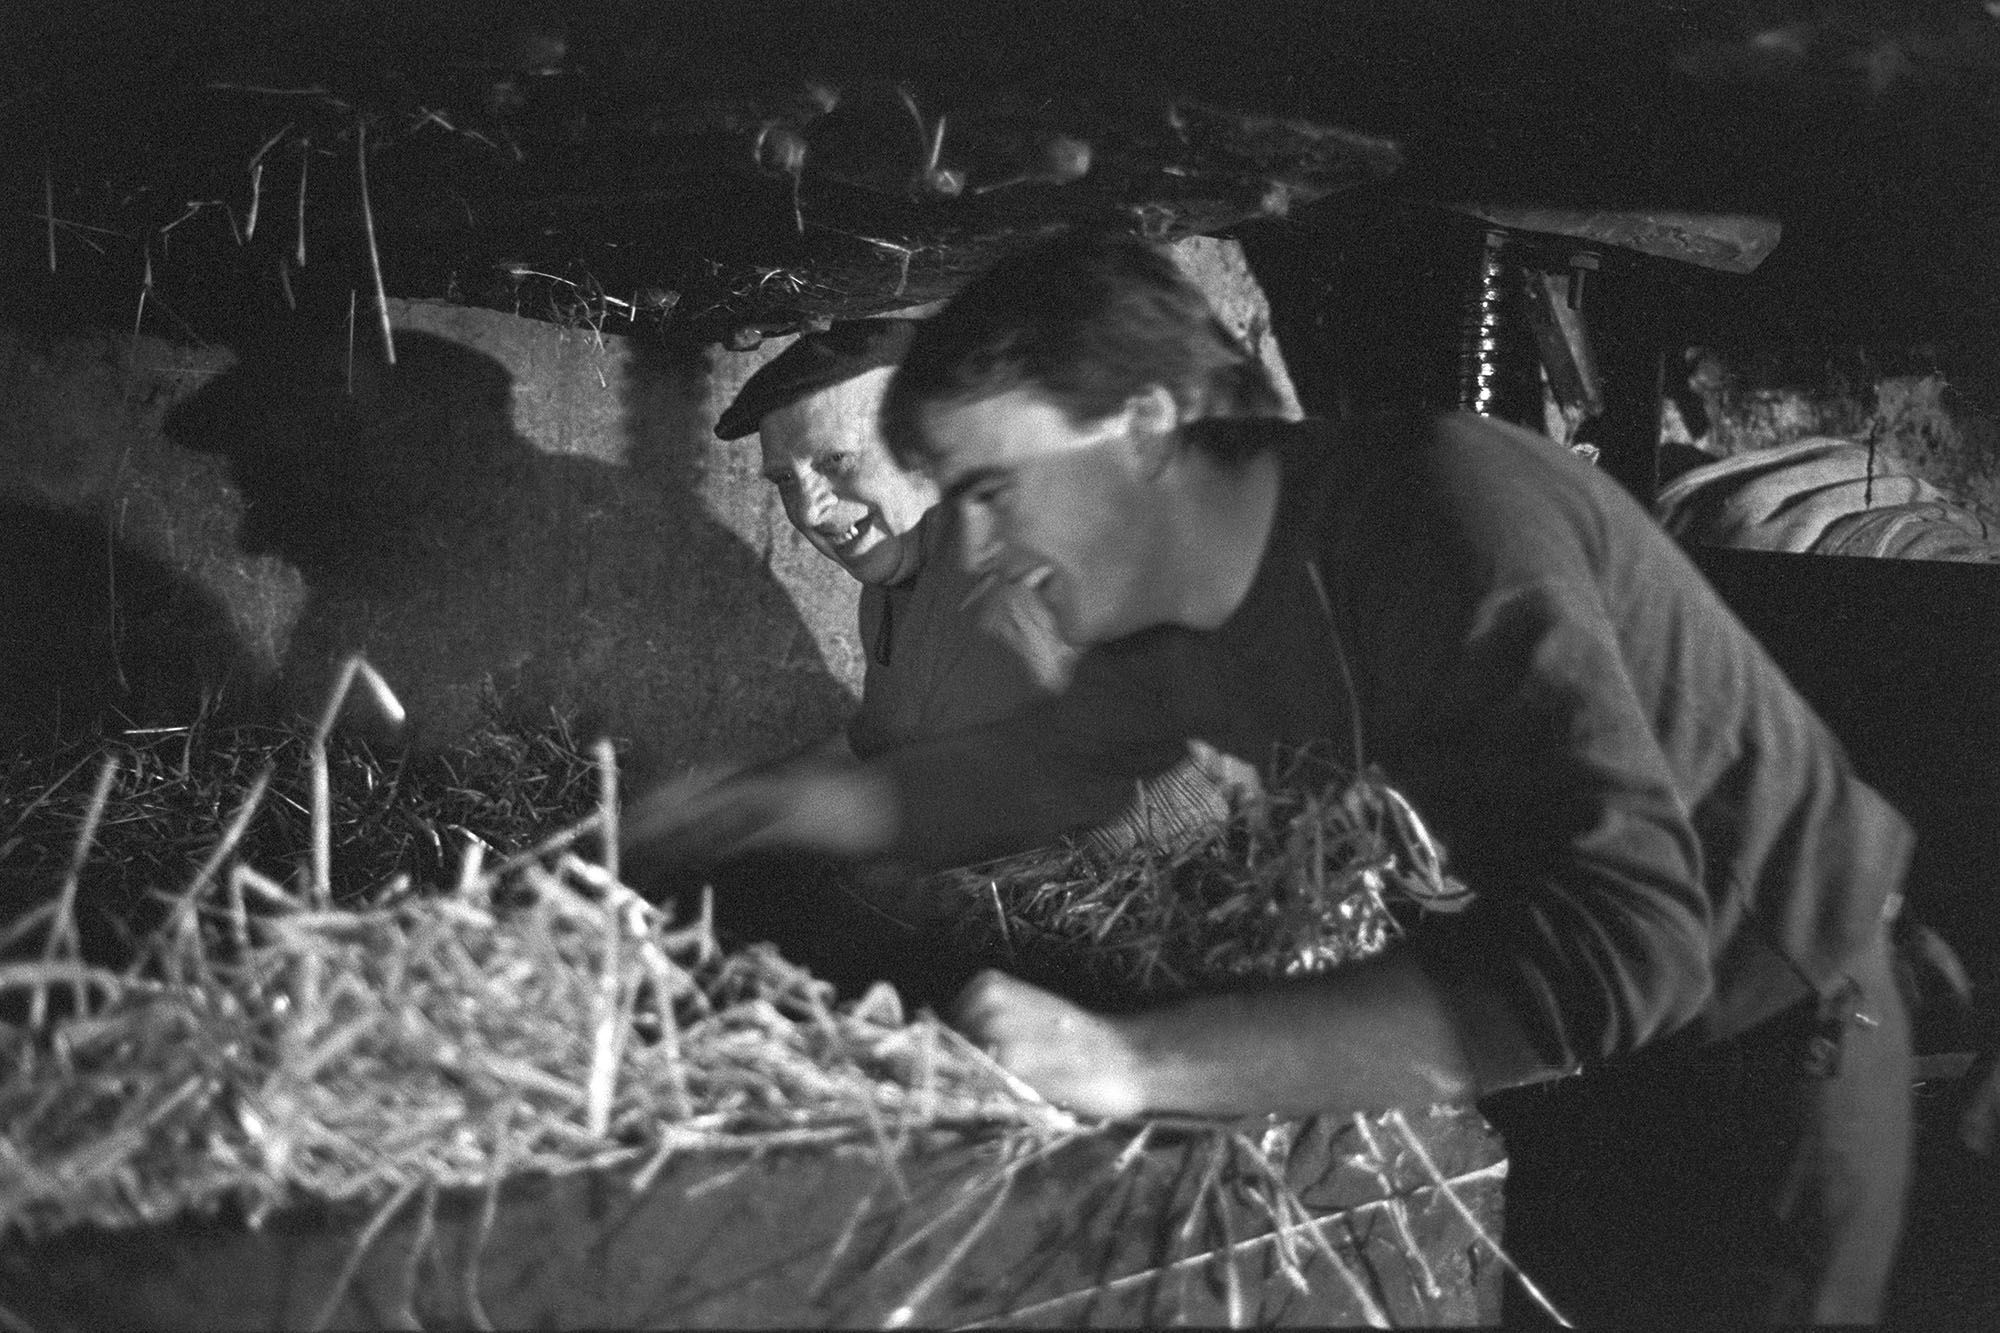 Farmers pressing cider in barn. Experienced man helping the younger generation! See old archive reference b02767. <br /> [Bill Bending, wearing a cap, showing a younger man, Mr Down, how to use a cider press at Spittle, Chulmleigh.]